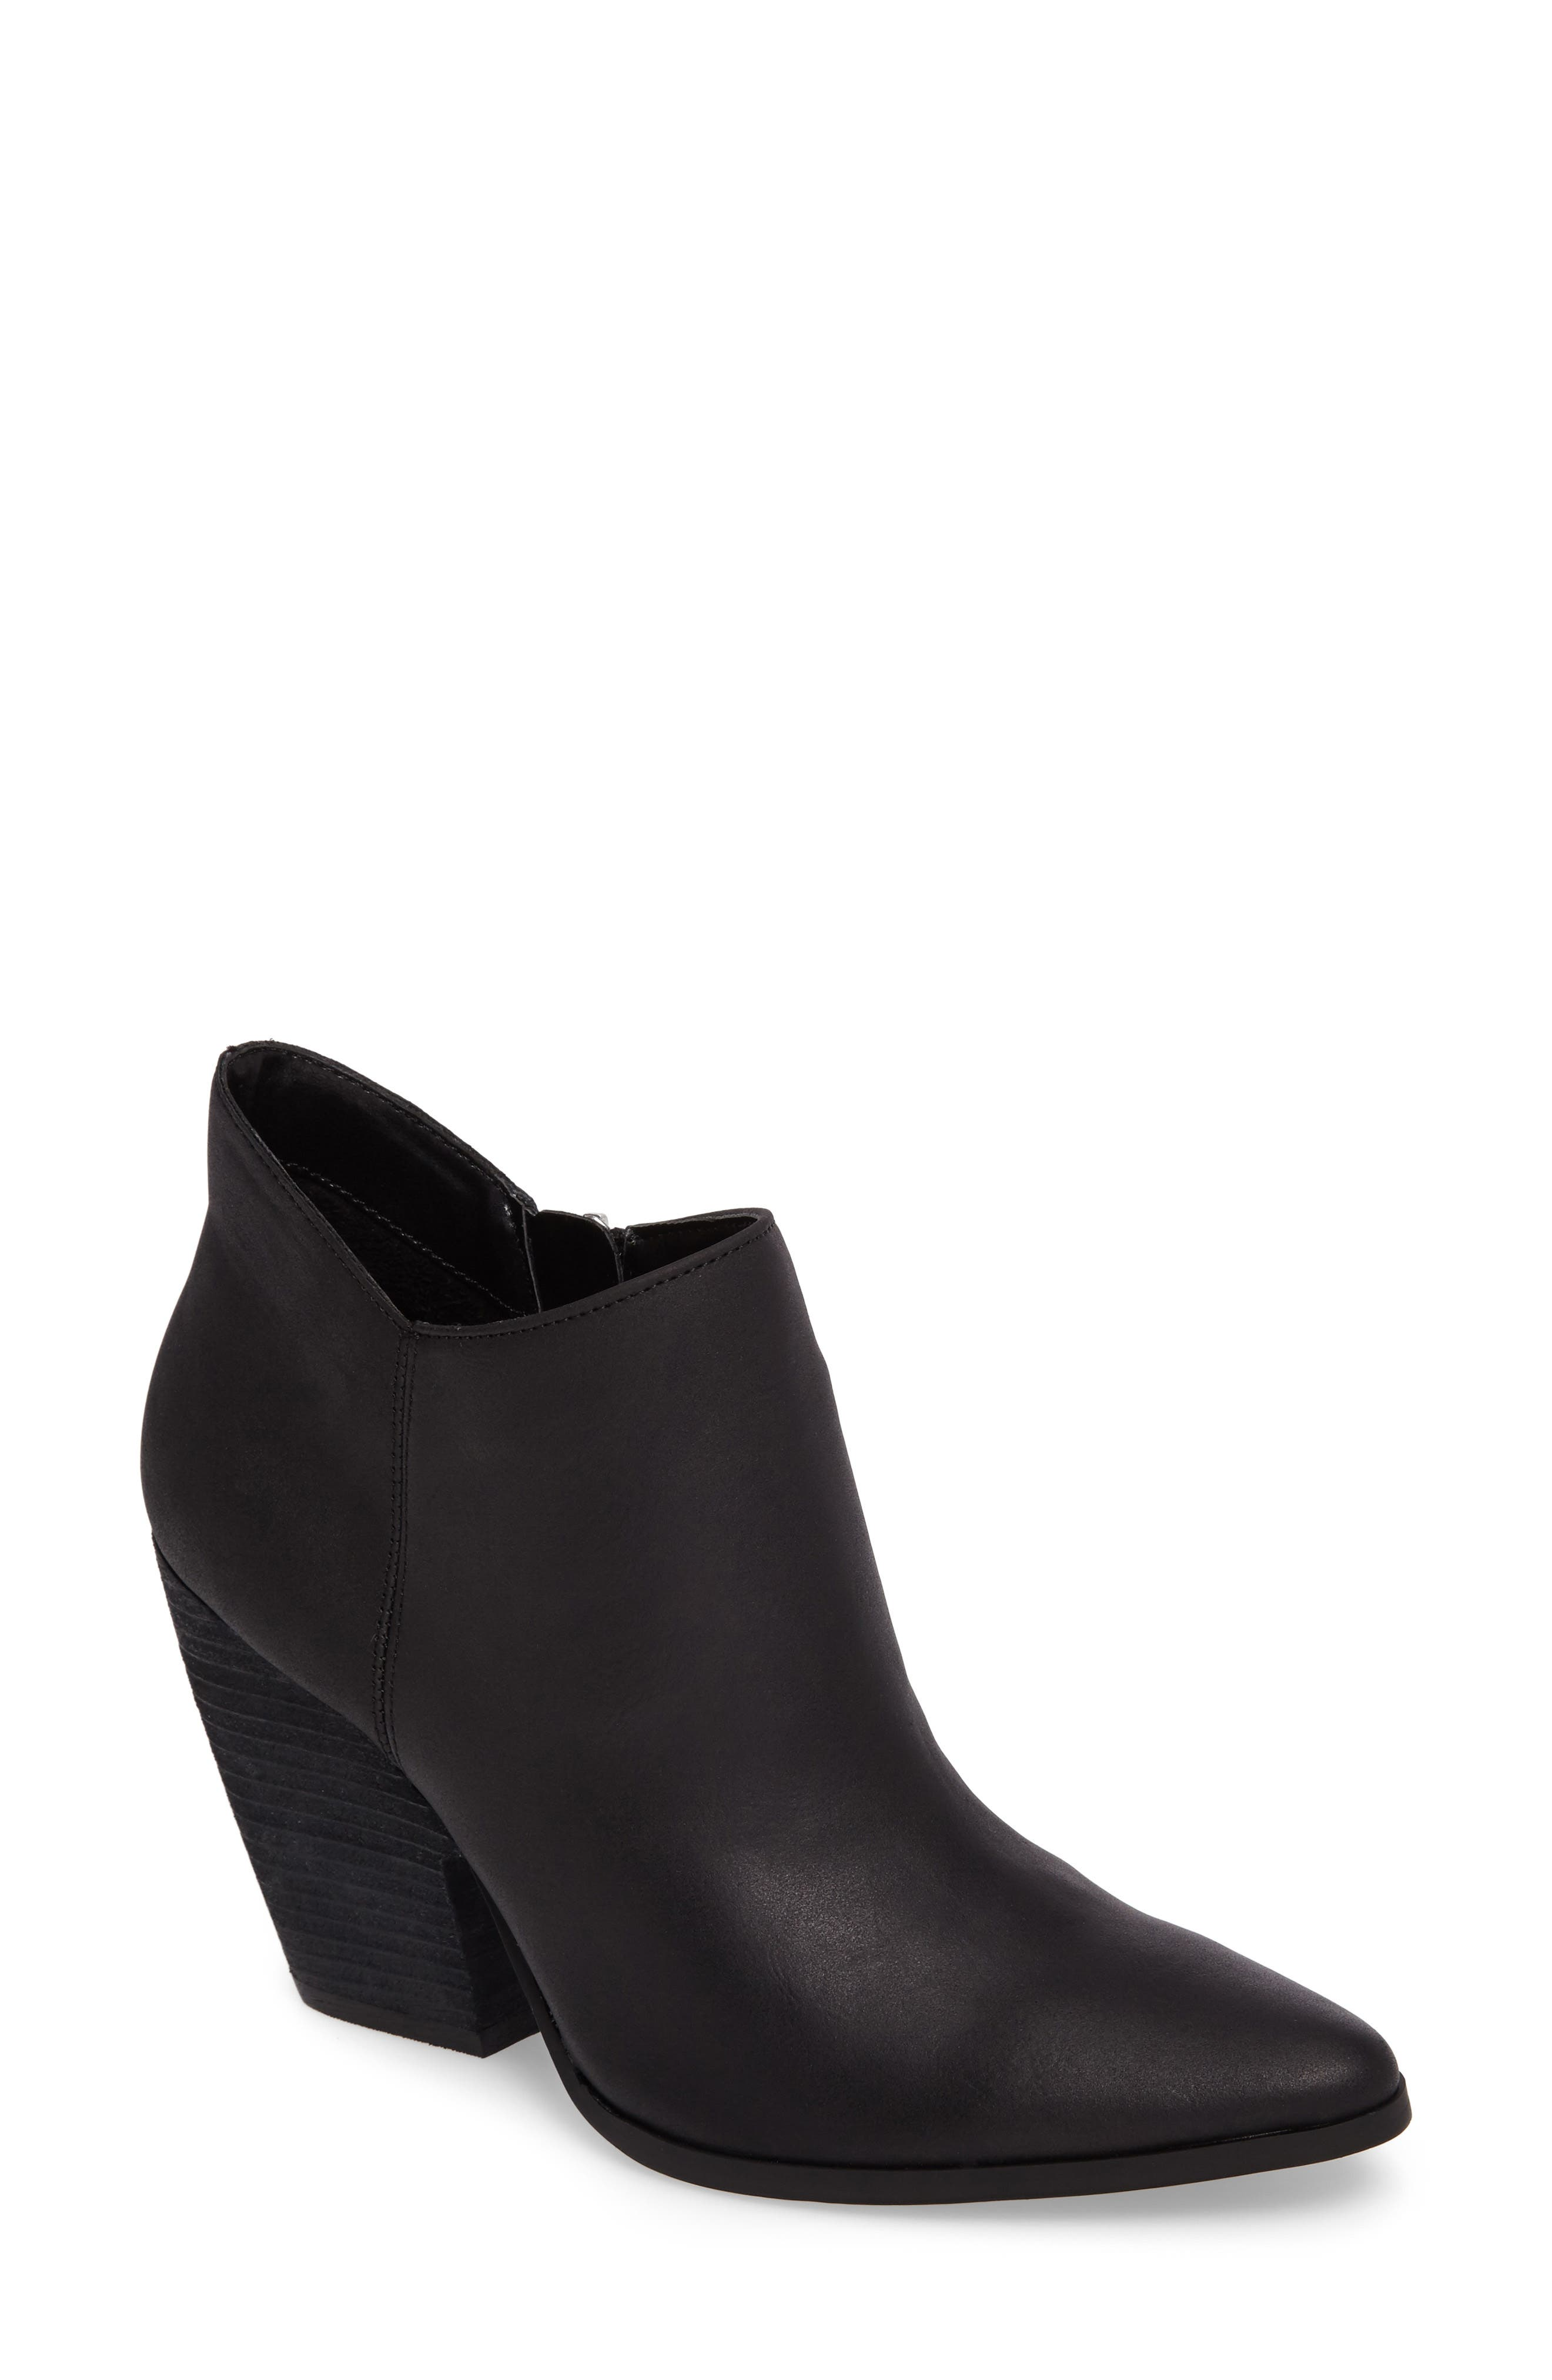 Natasha Bootie,                         Main,                         color, Black